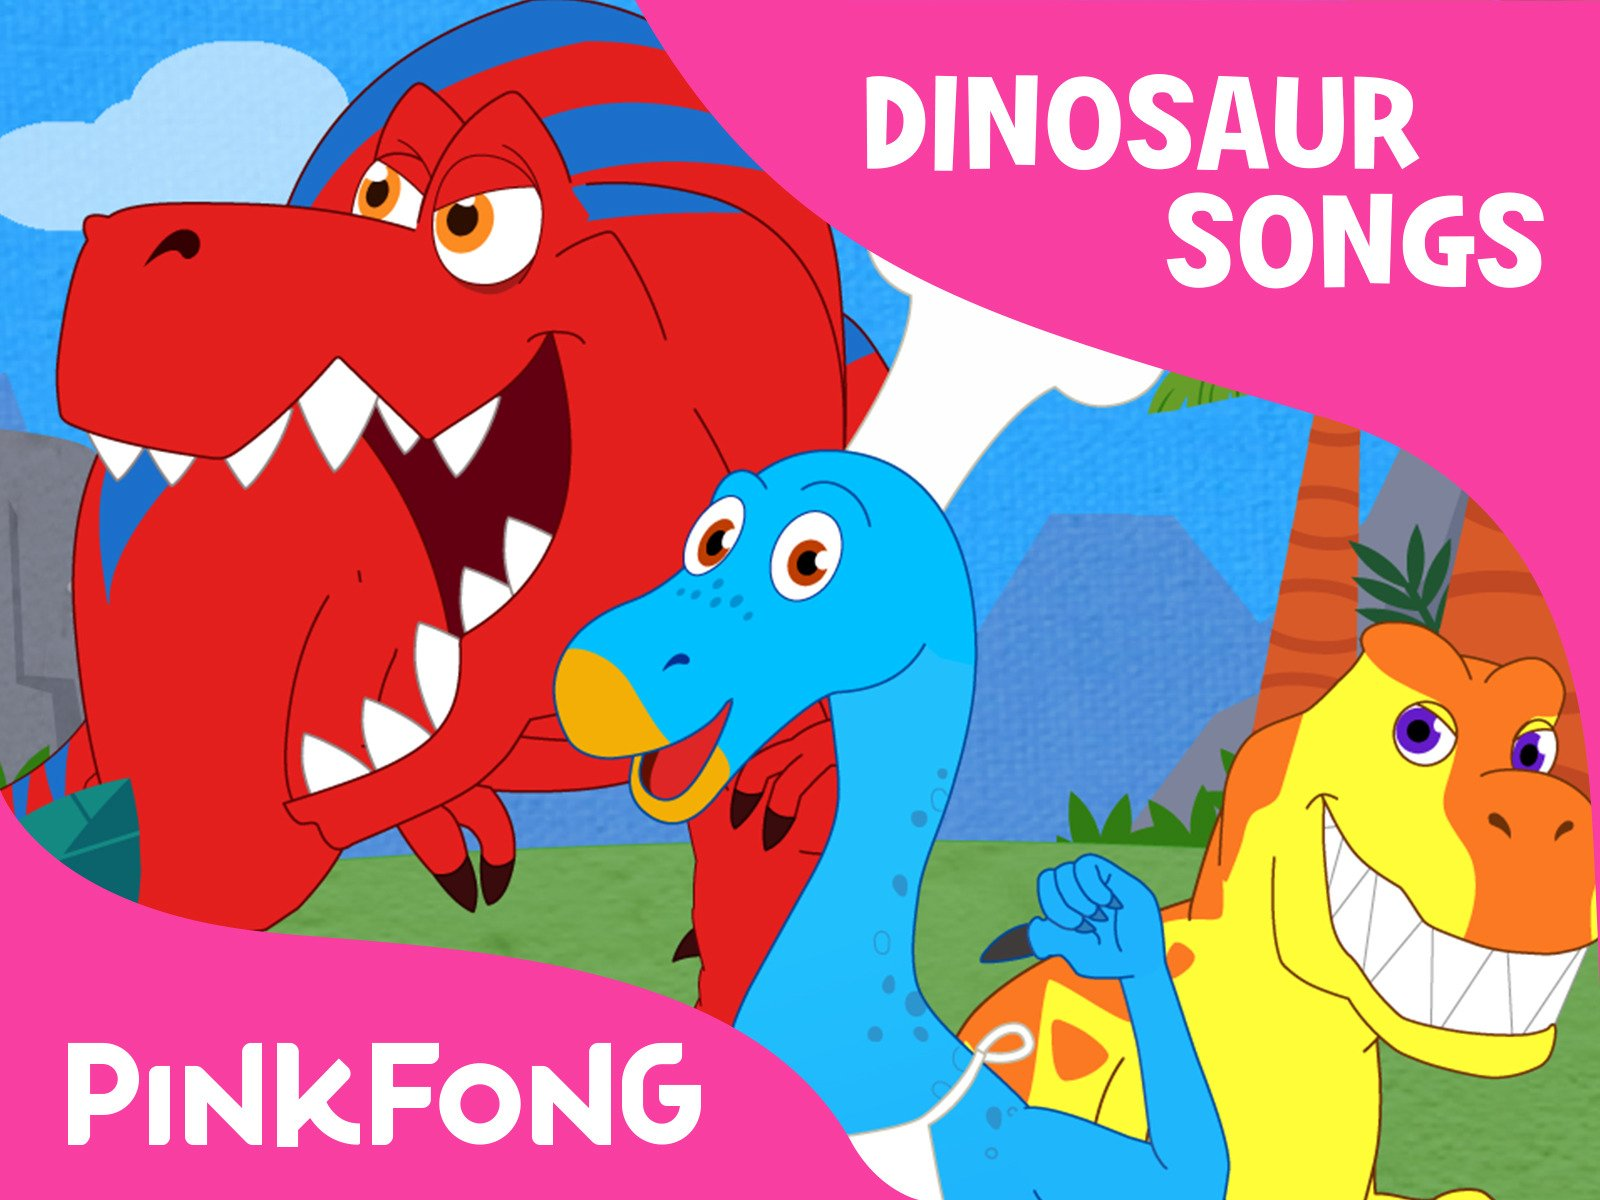 Dinosaur Songs: Pinkfong